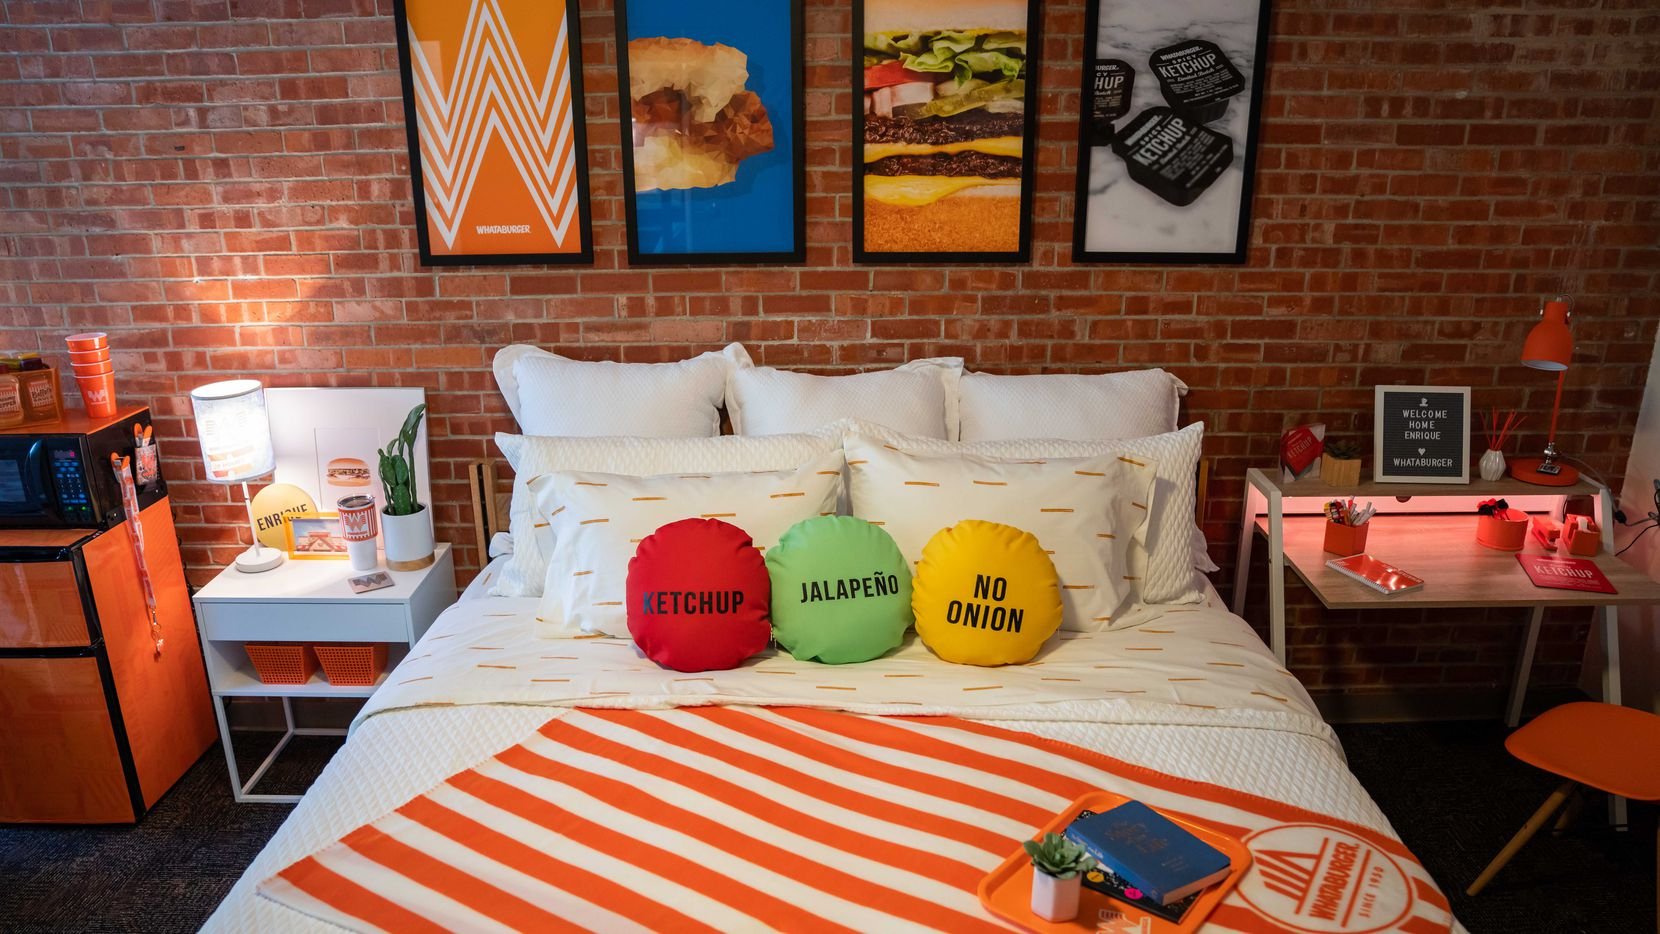 This Whataburger-themed dorm room is home for Enrique Alcoreza, a student at Trinity University in San Antonio.